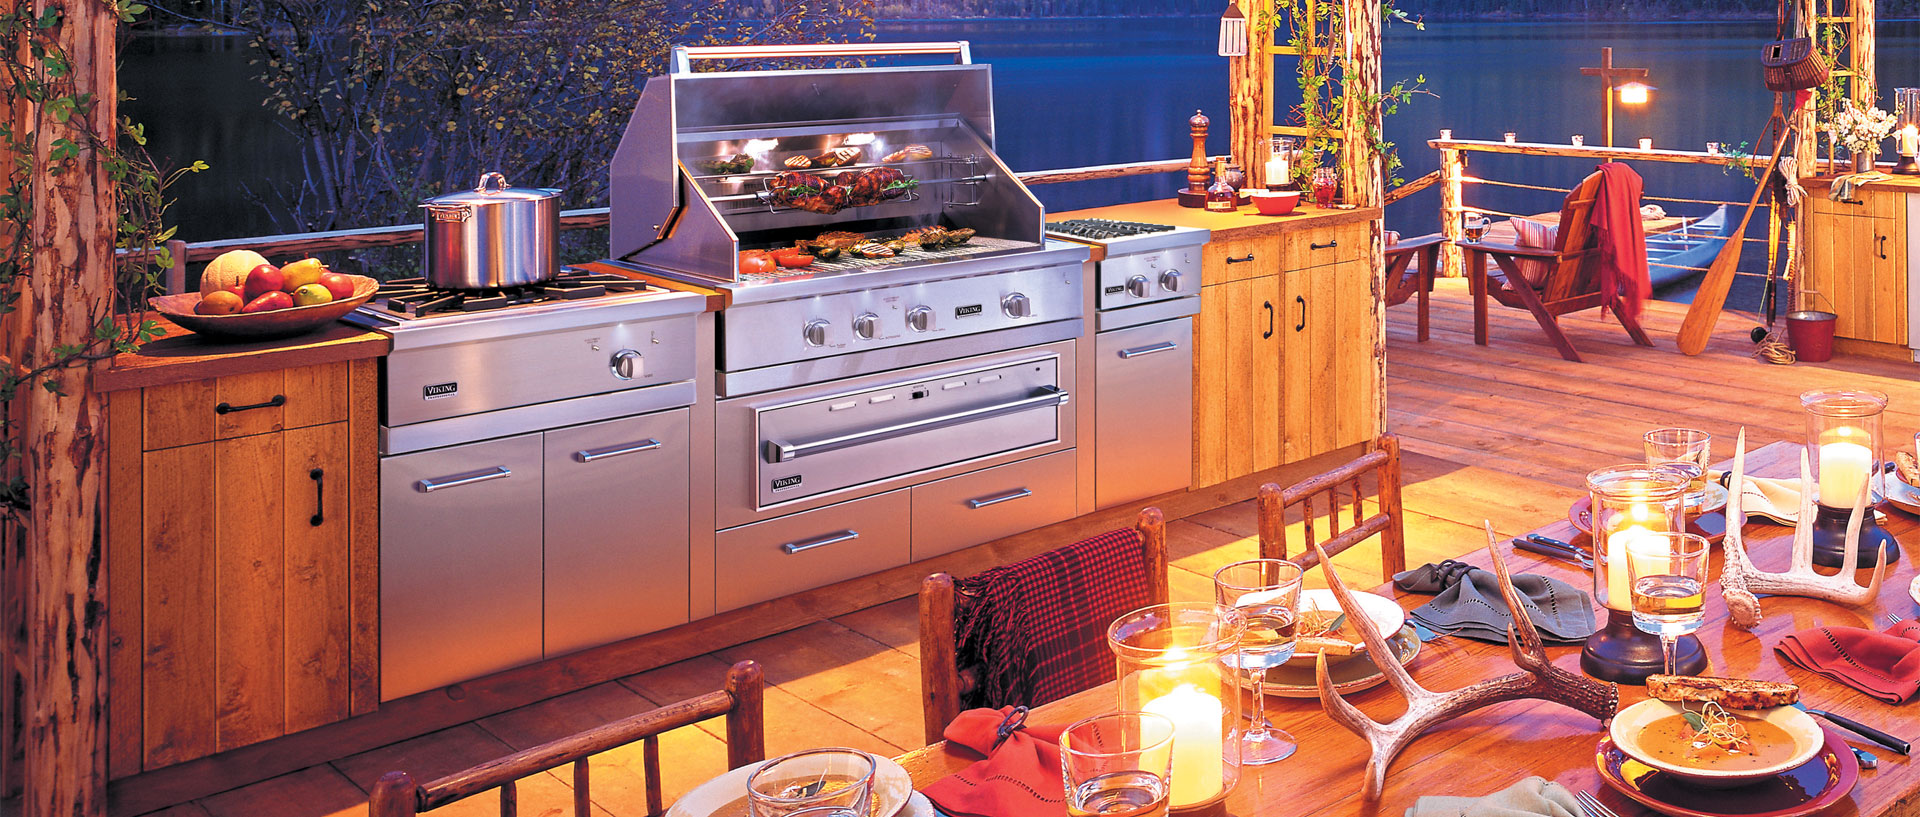 The fun never stops, even if the sun sets in a Viking Outdoor Kitchen complete with a built-in grill, side burners, and more!